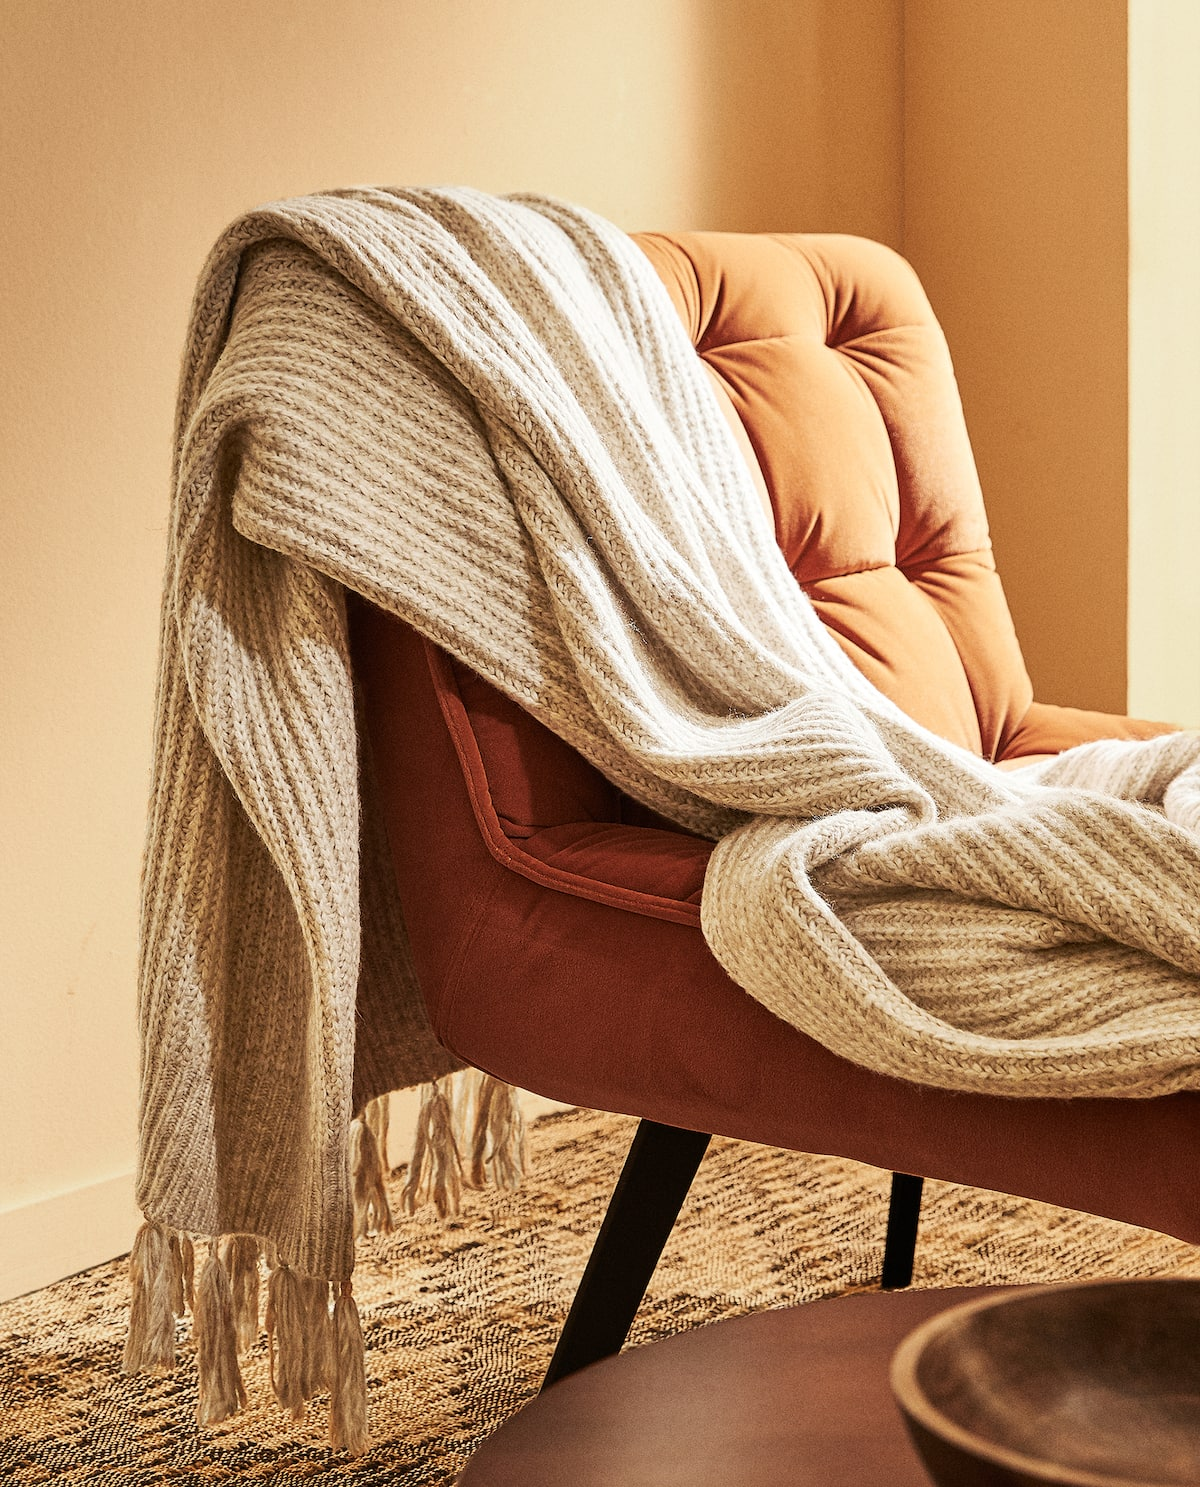 Ribbed knit blanket from Zara Home